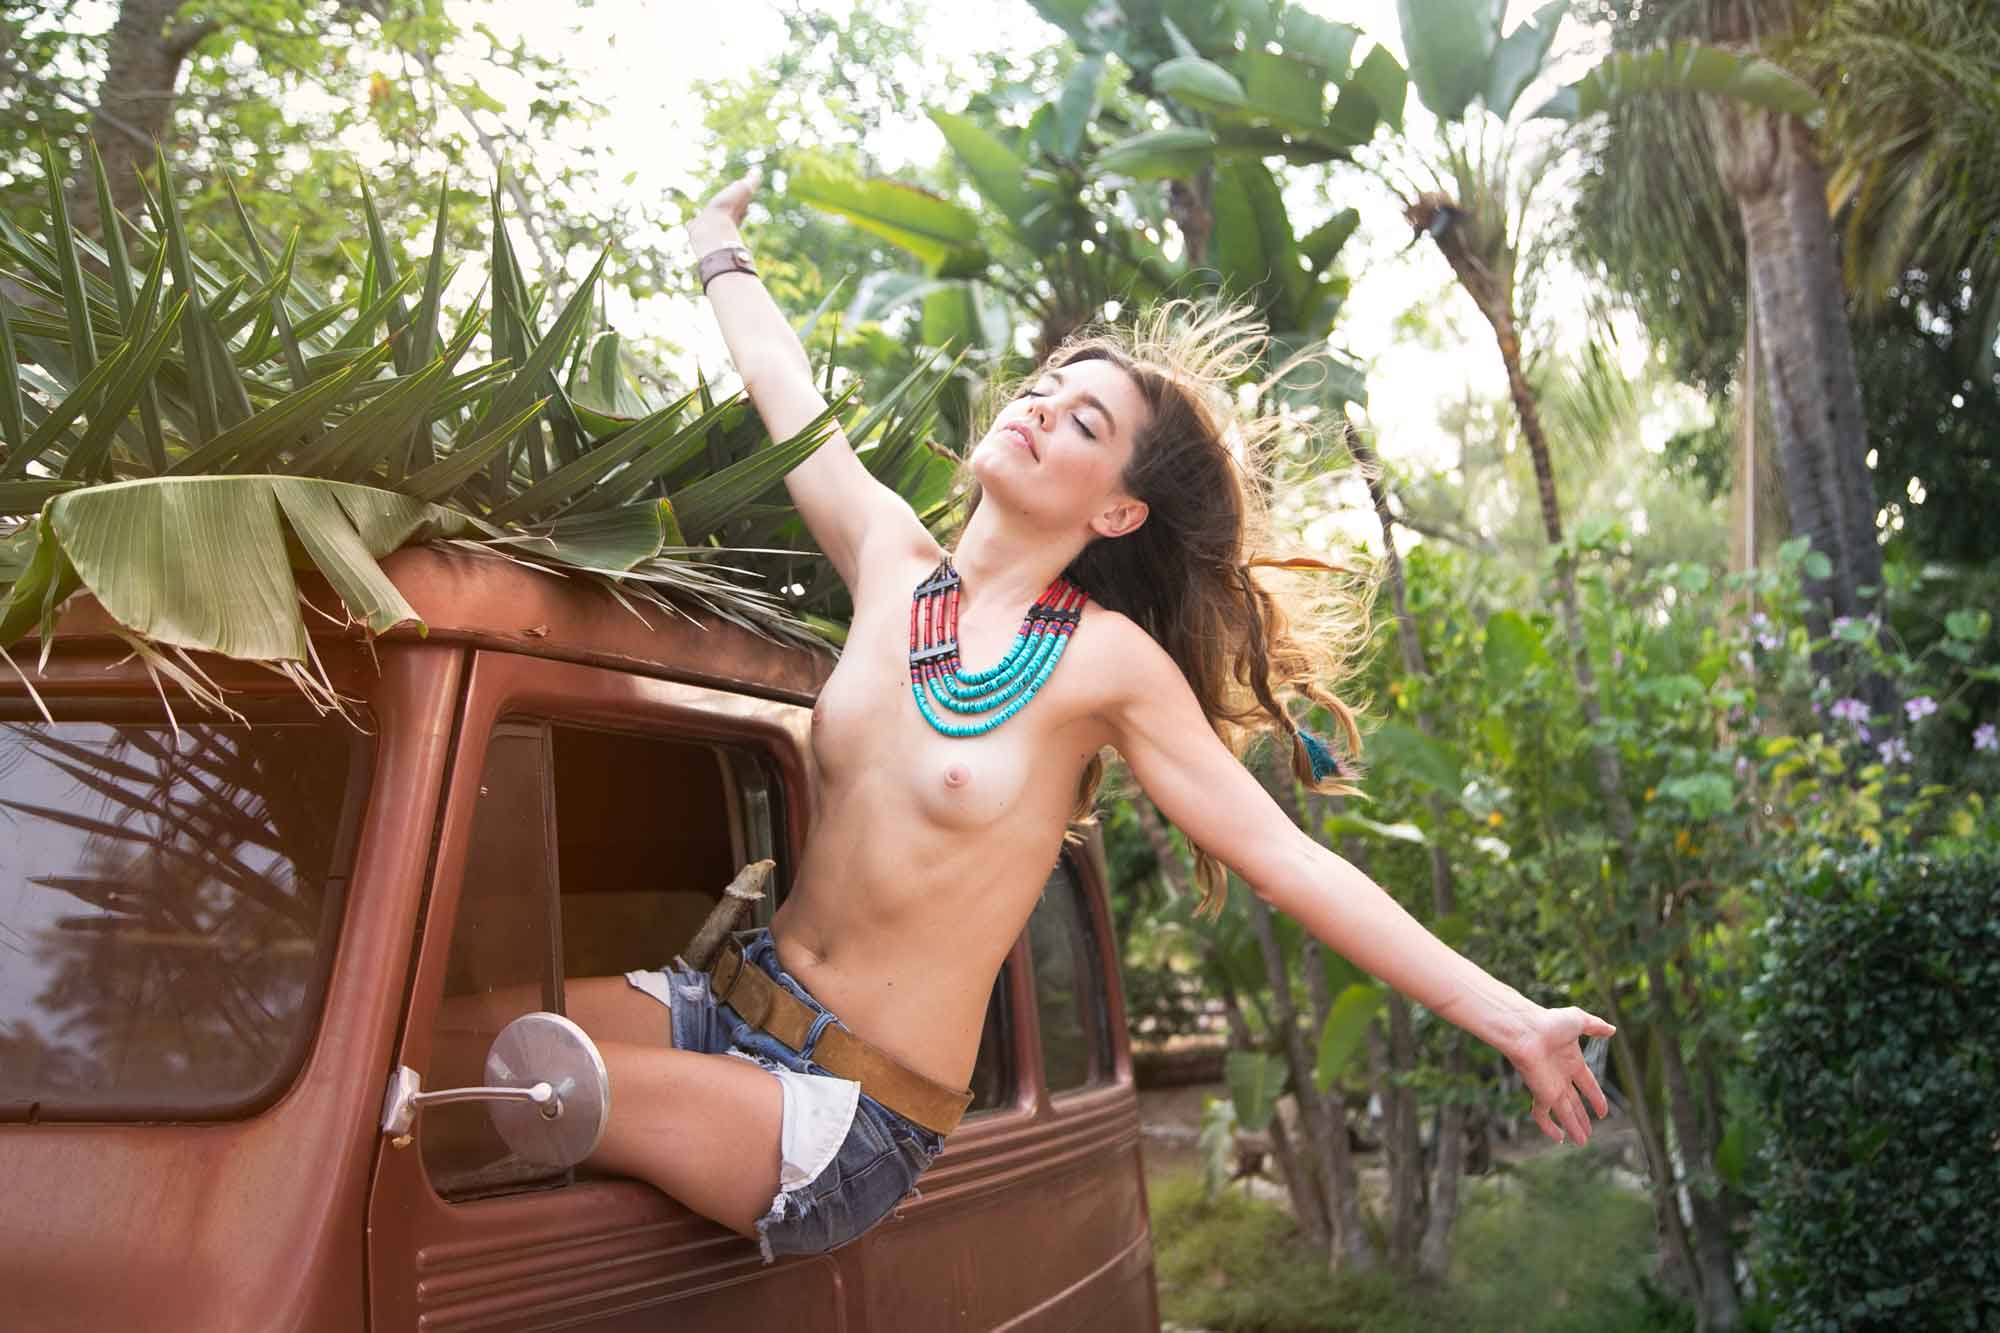 bohemian,tropical,youth,warm light,sunset,jungle,freedom,hippie chic, earthy,natural,freedom,heather van gaale